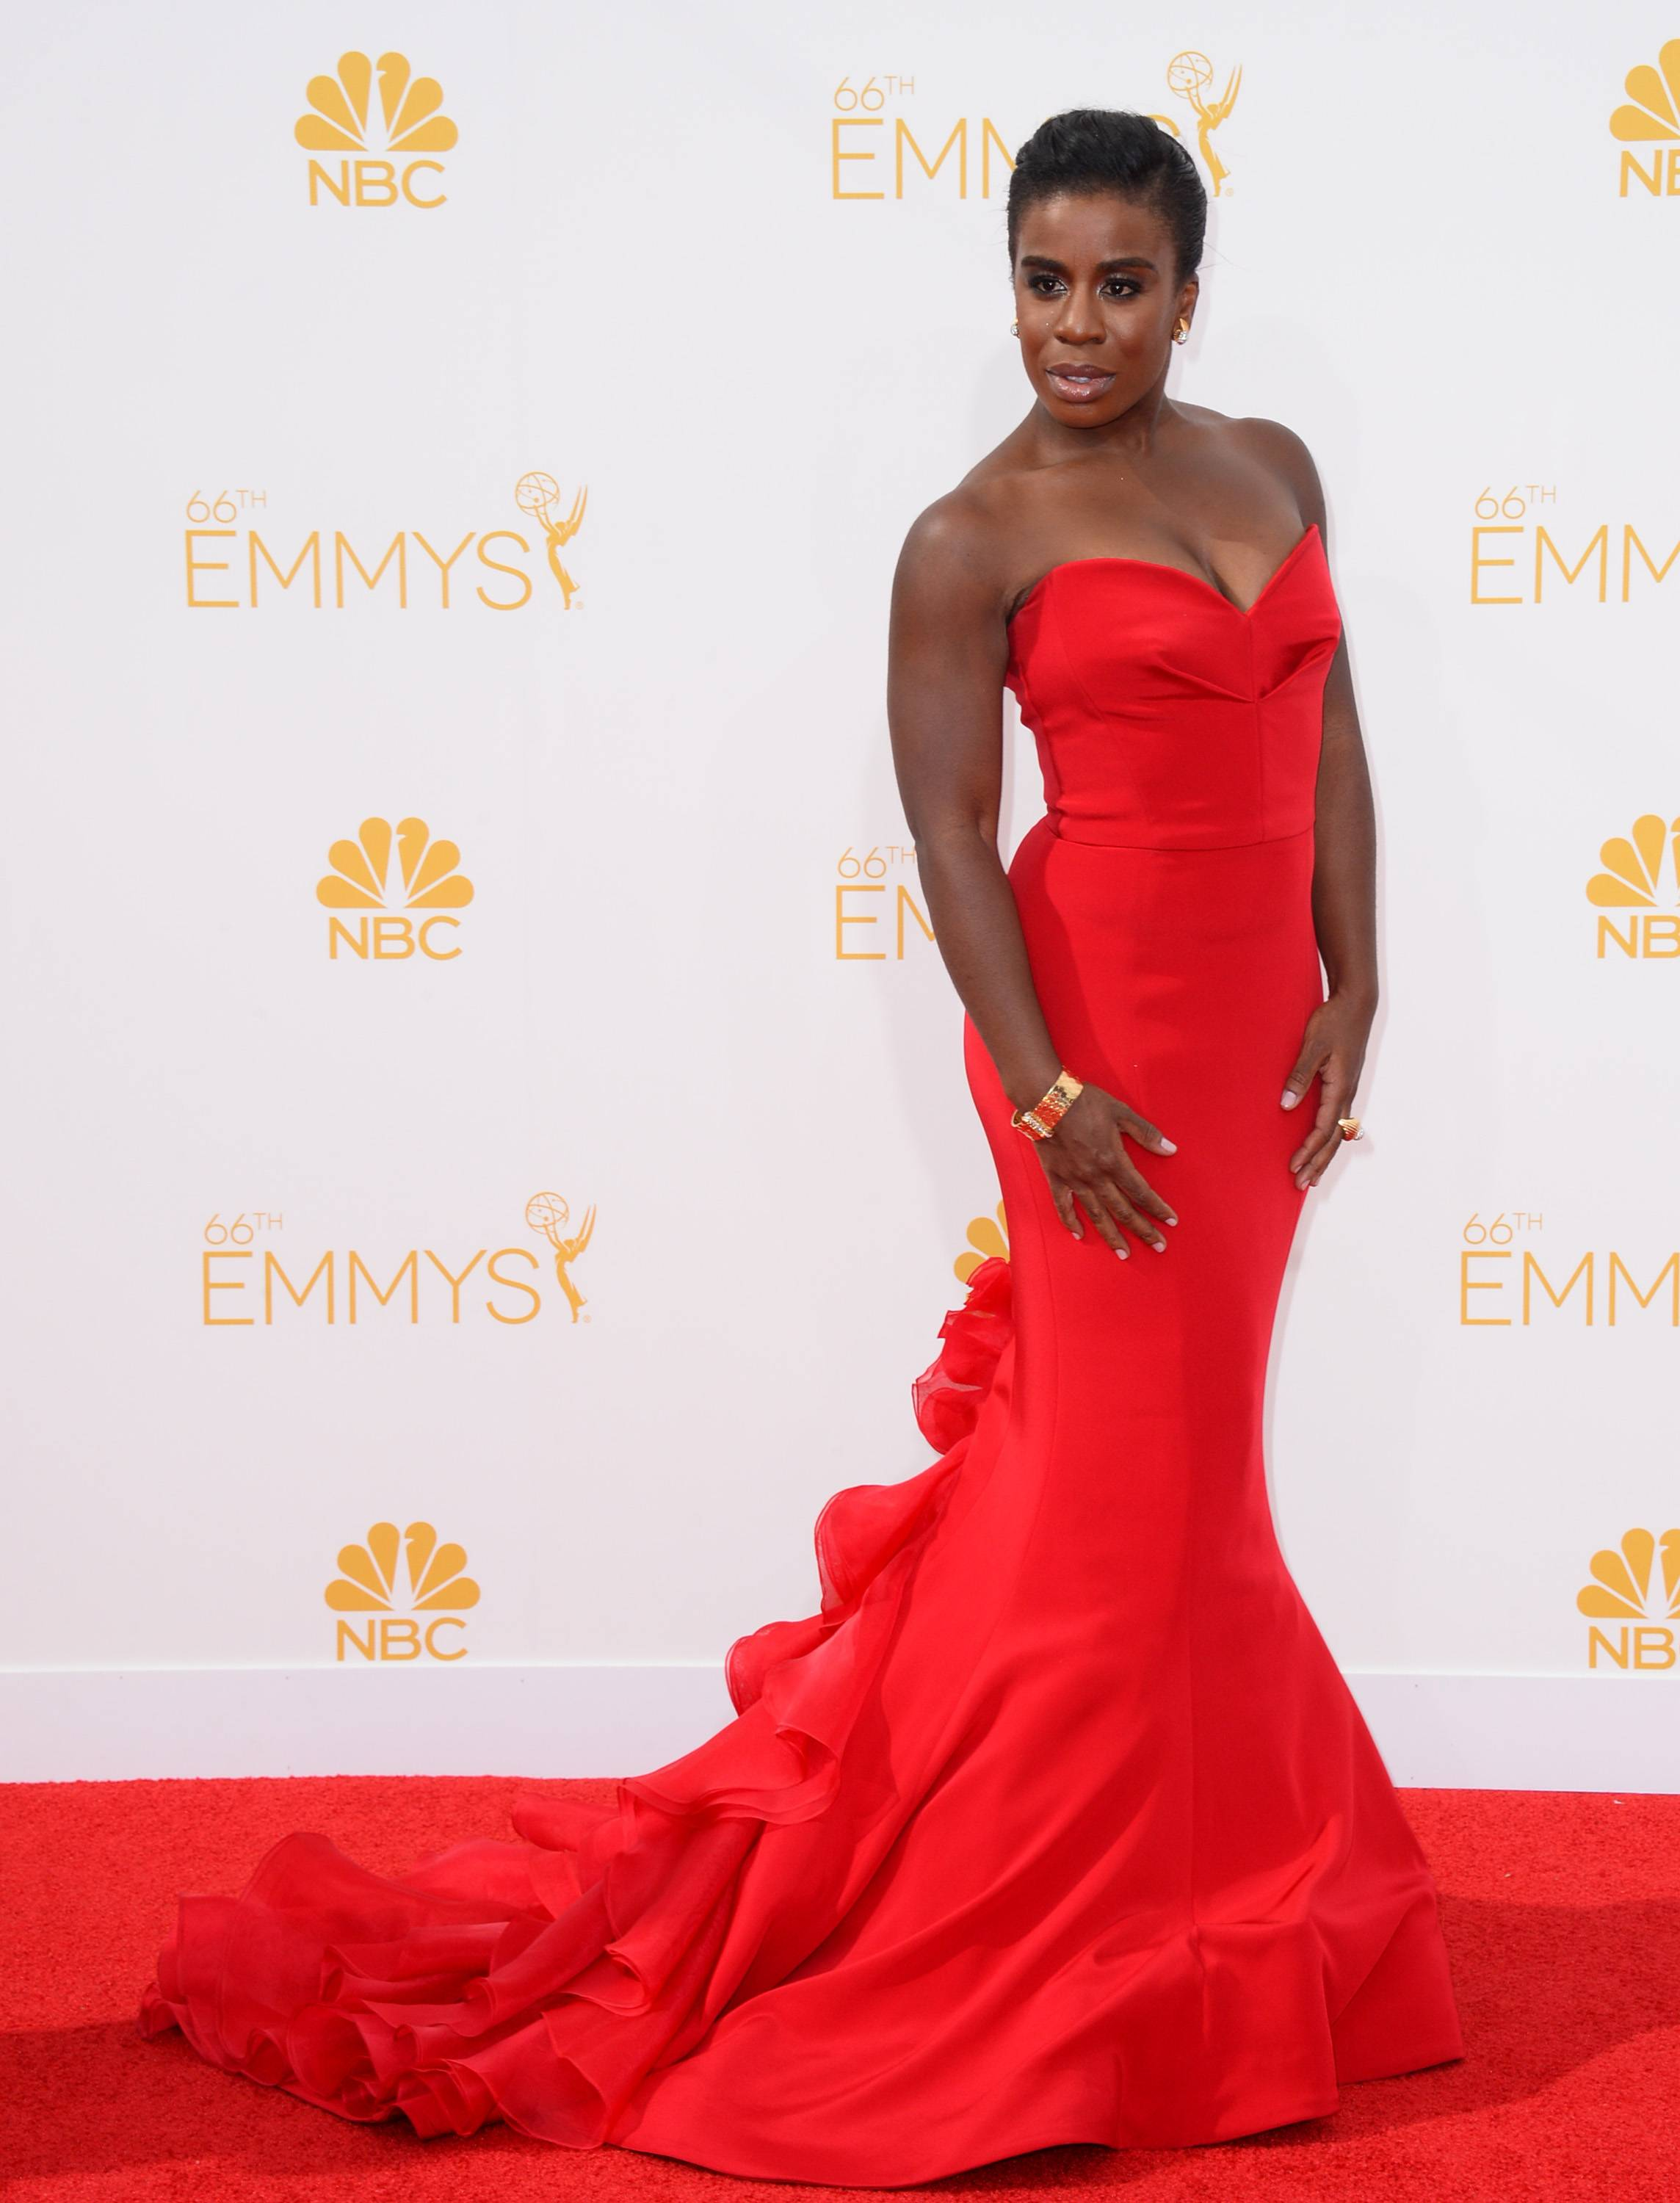 Uzo Aduba arrives at the 66th Annual Primetime Emmy Awards at the Nokia Theatre L.A. Live on Monday, Aug. 25, 2014, in Los Angeles. (Photo by Jordan Strauss/Invision/AP)